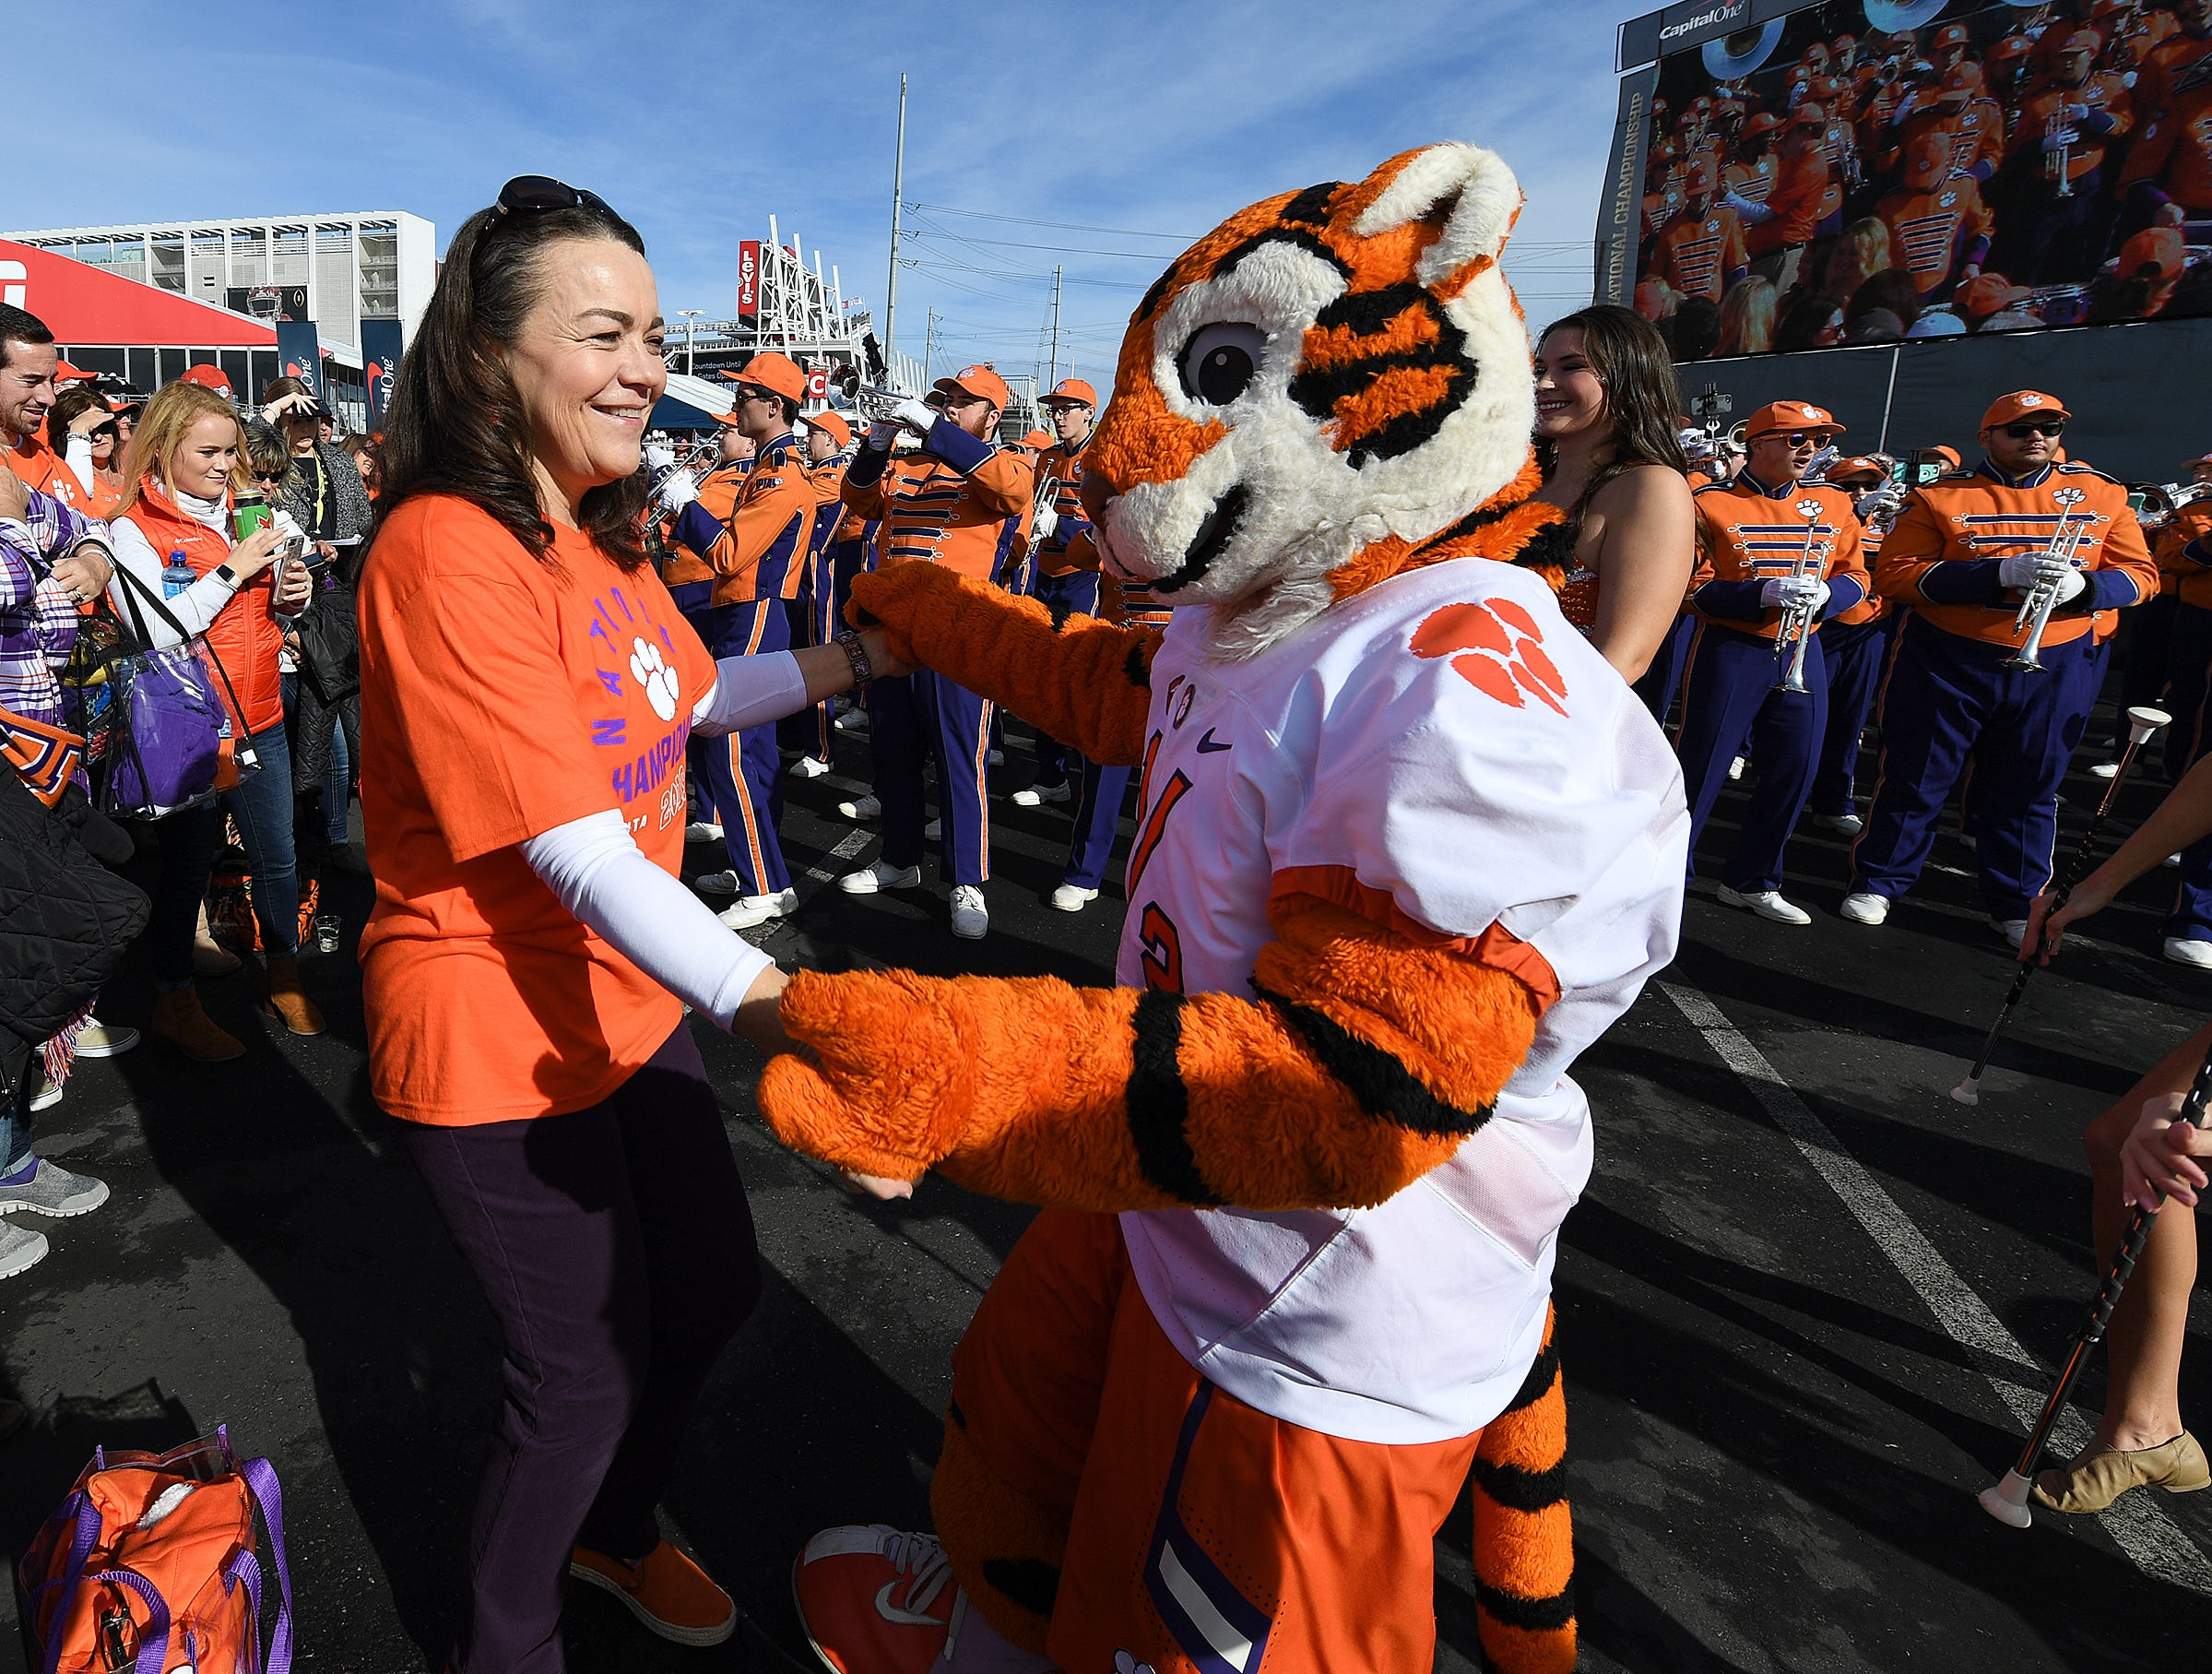 The Tiger Cub dances with a fan during the College Football Championship Playoff Tailgate outside Levi's Stadium in Santa Clara, CA Monday, January 7, 2019.